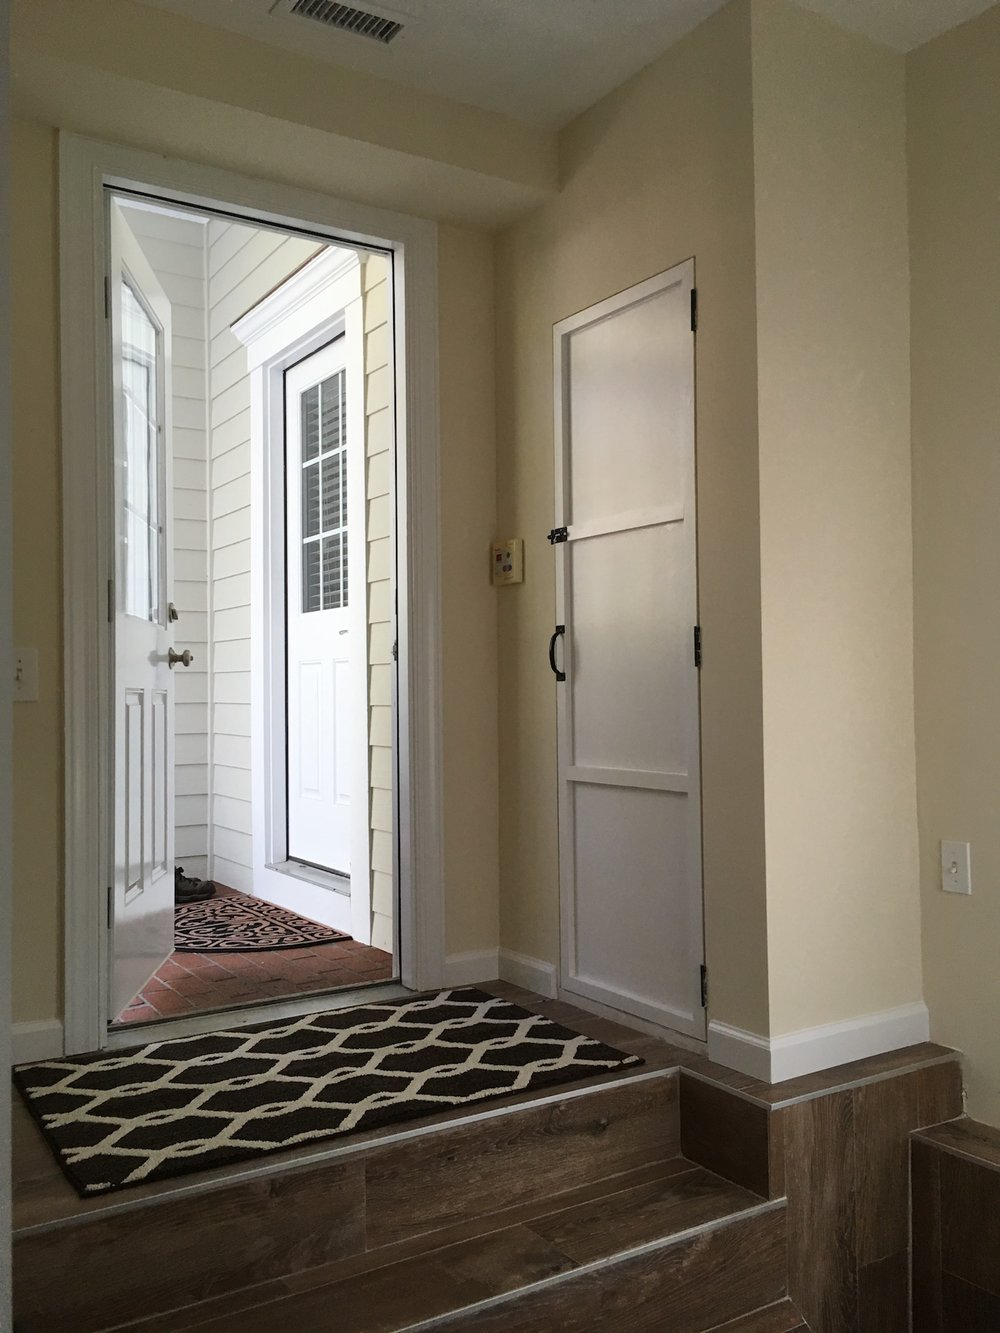 Garage Entry by ozworx - an oak island remodeling contractor